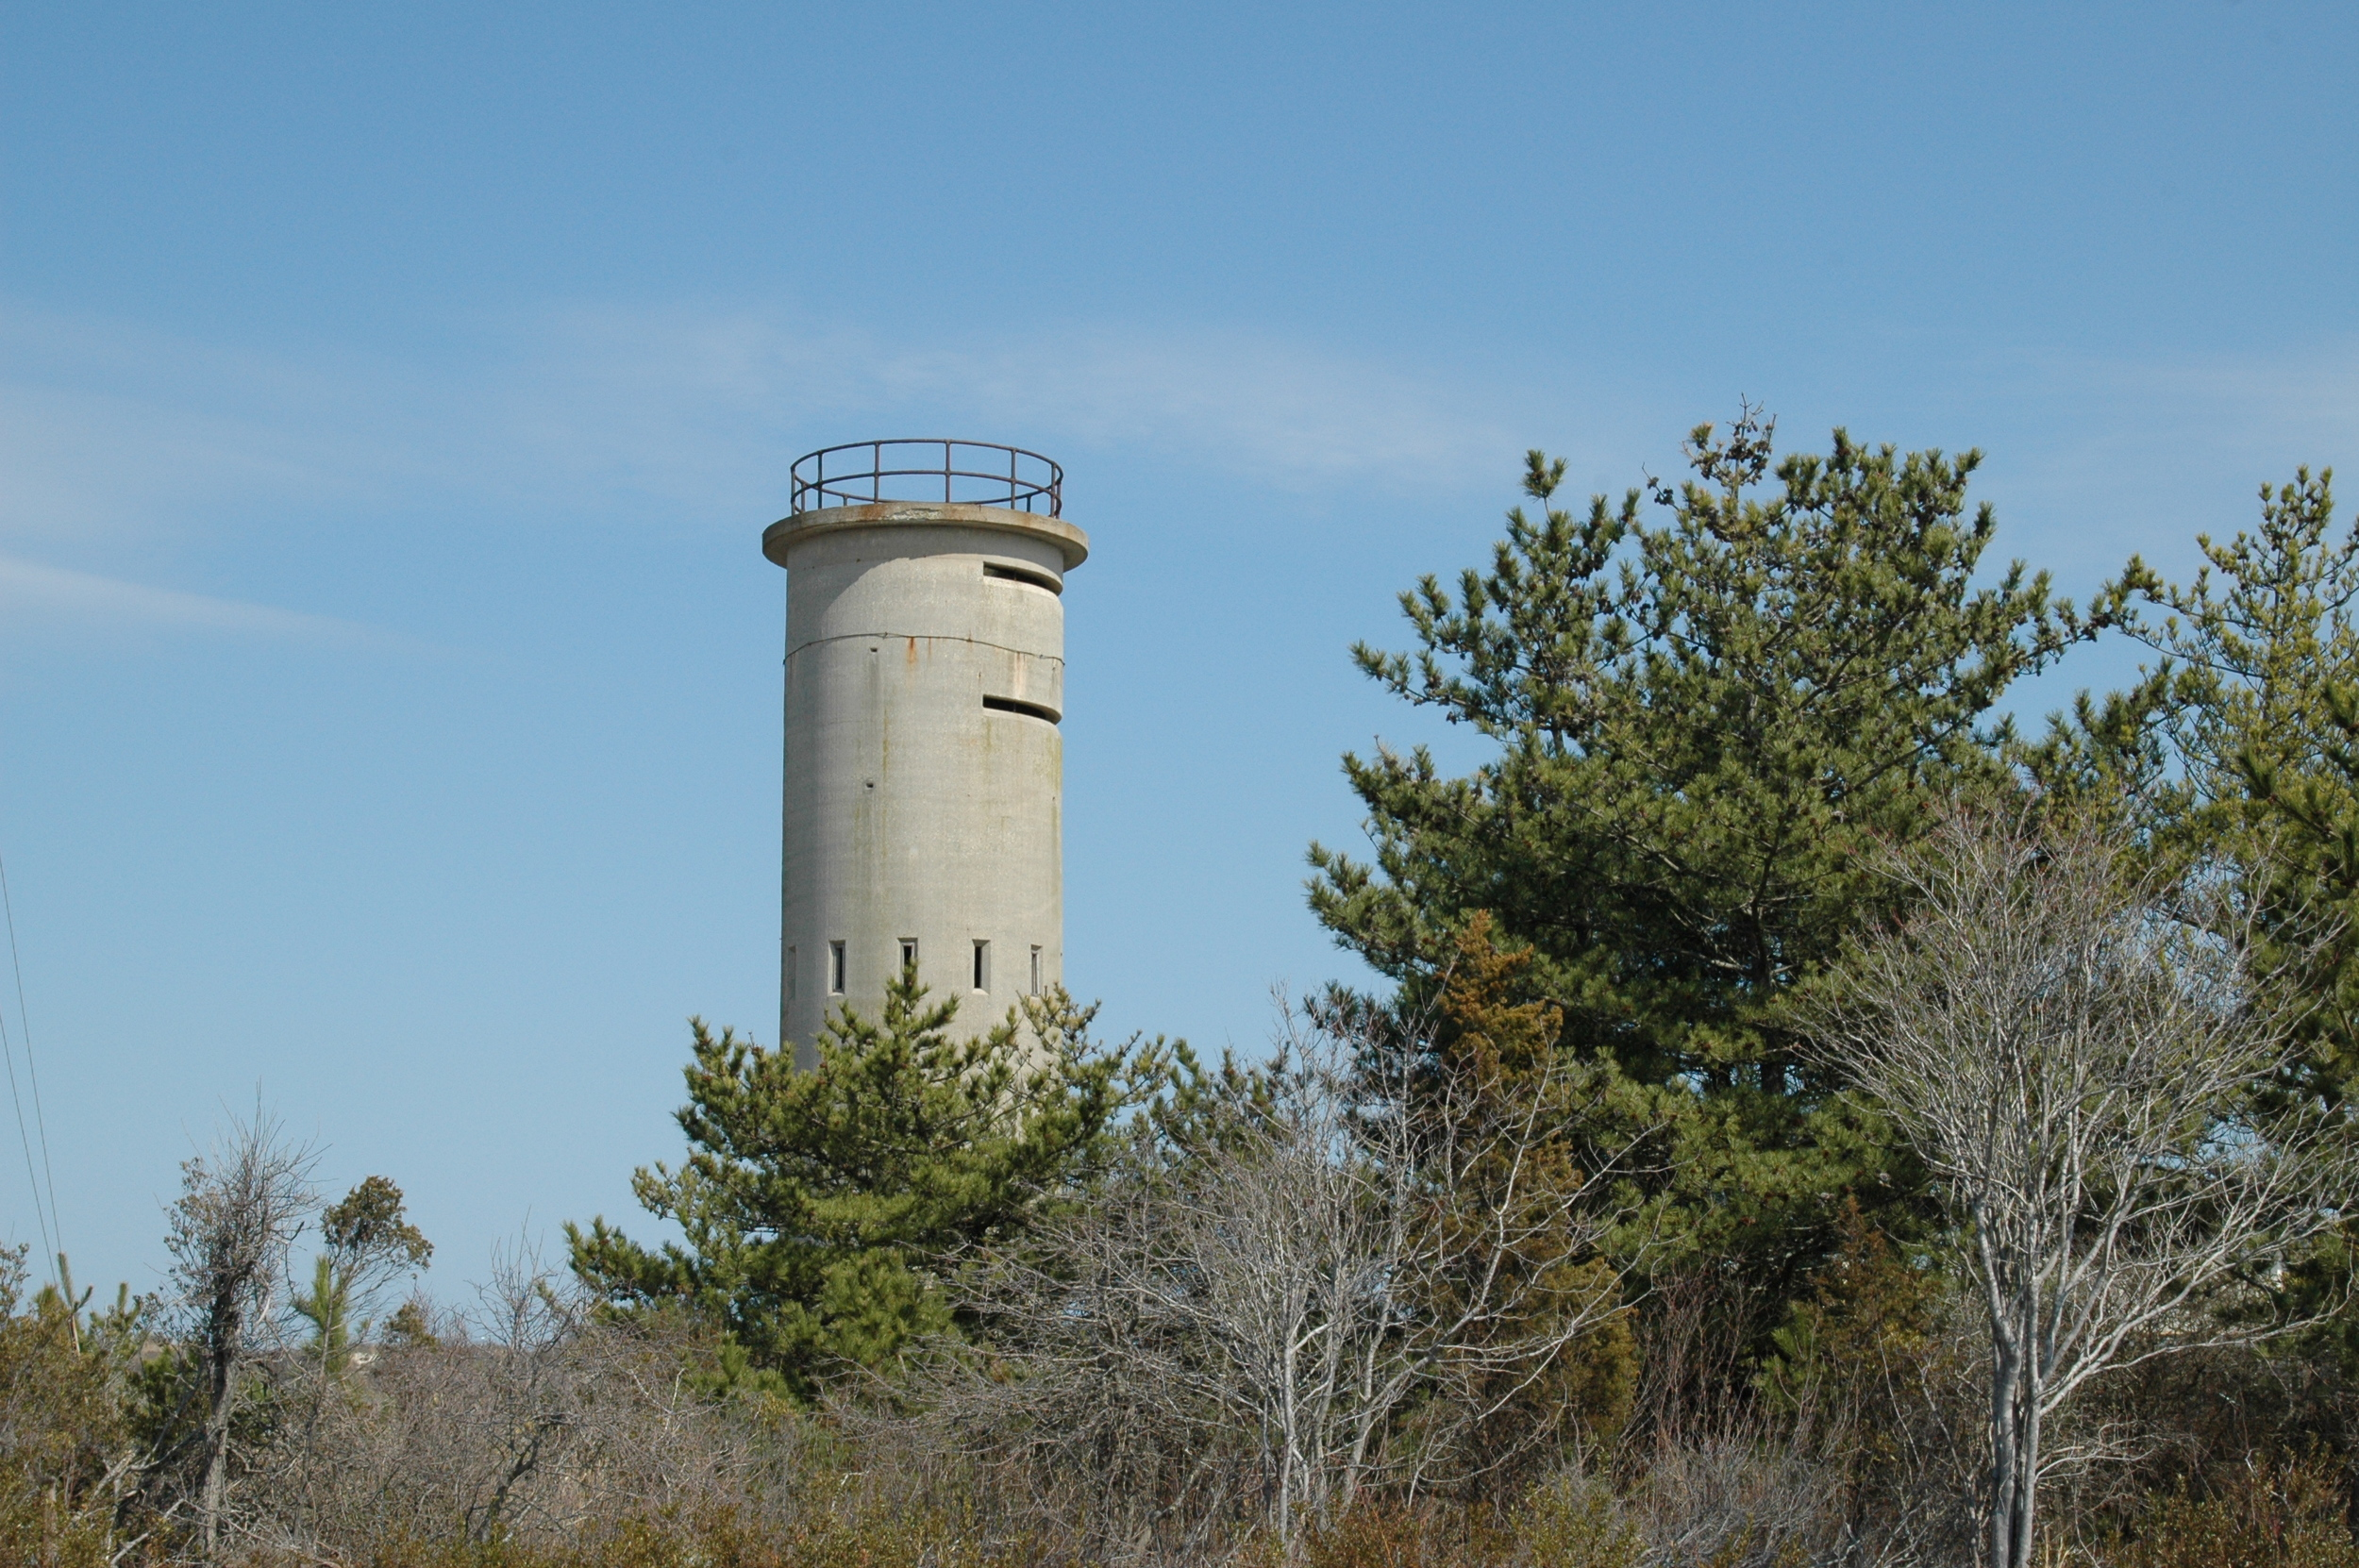 Fire control tower